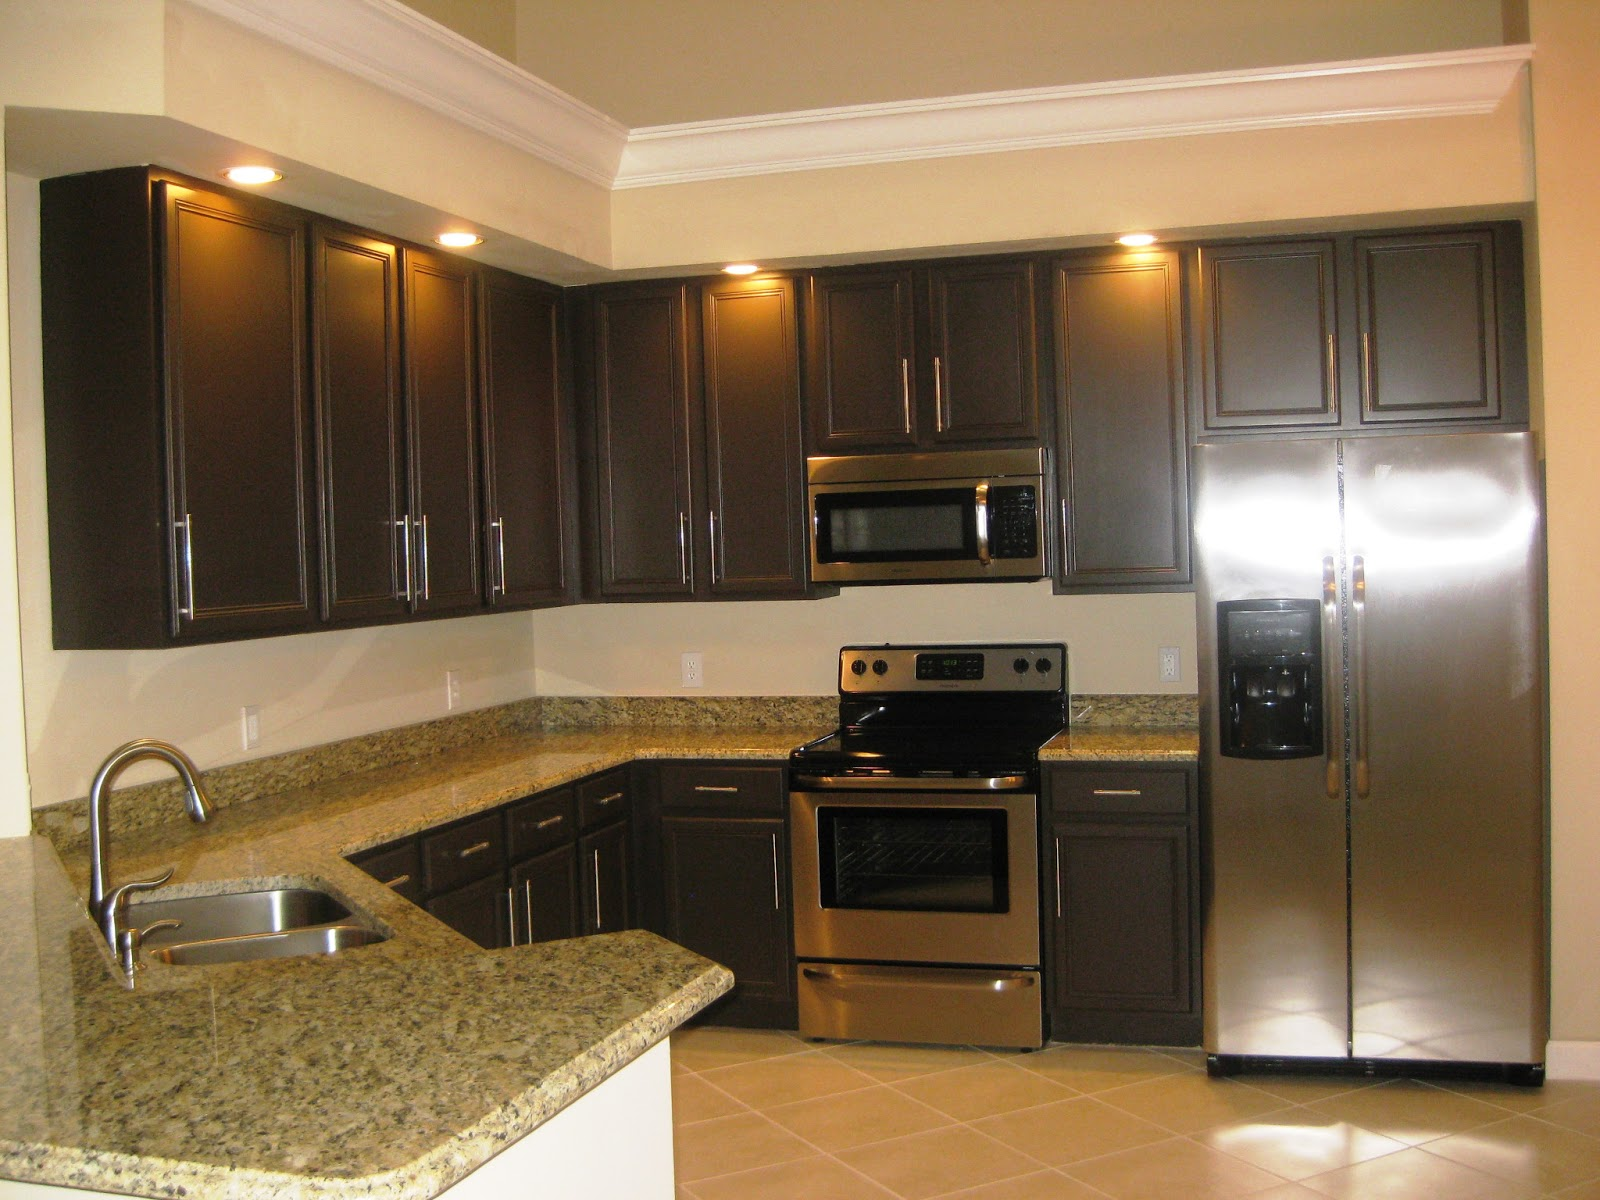 Colors To Paint Kitchen Classy With Kitchen Paint Color Ideas with Dark Cabinets Photo